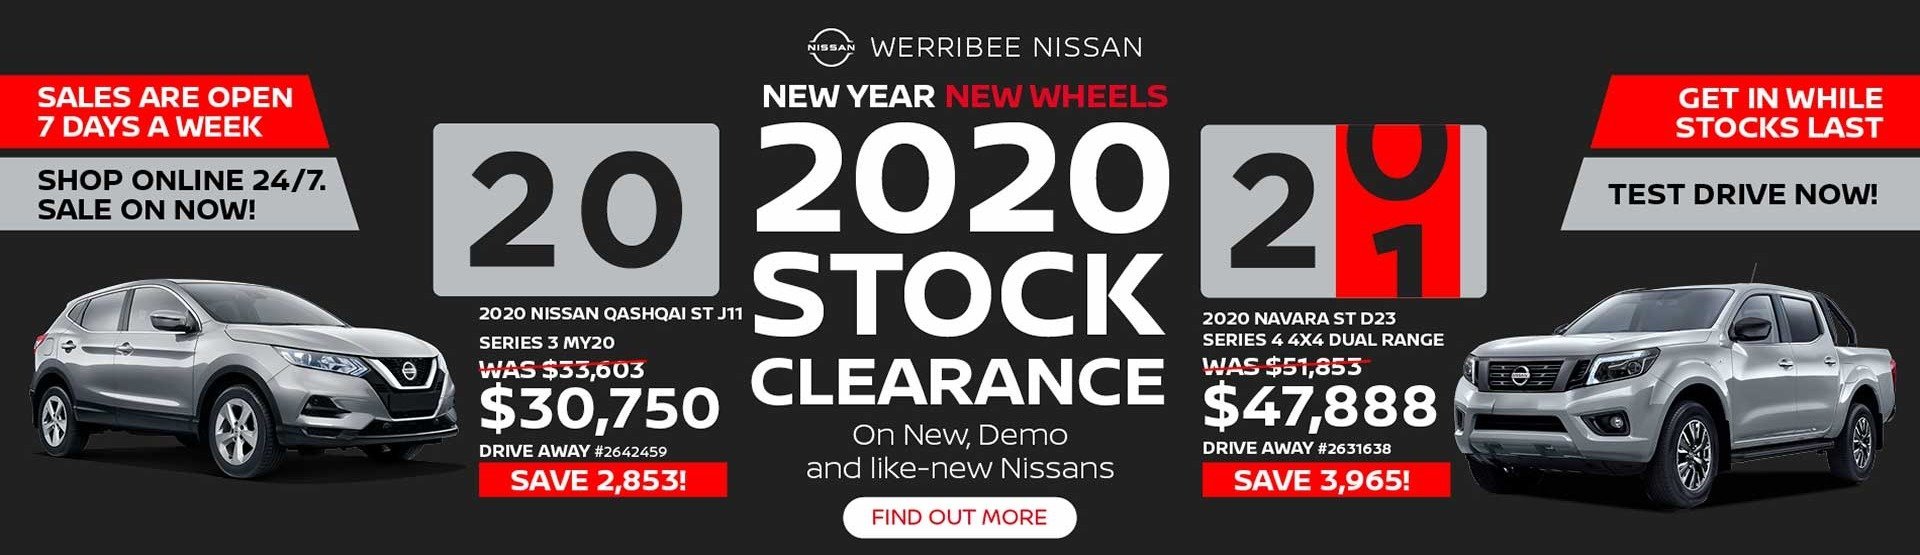 2020 Stock Clearance